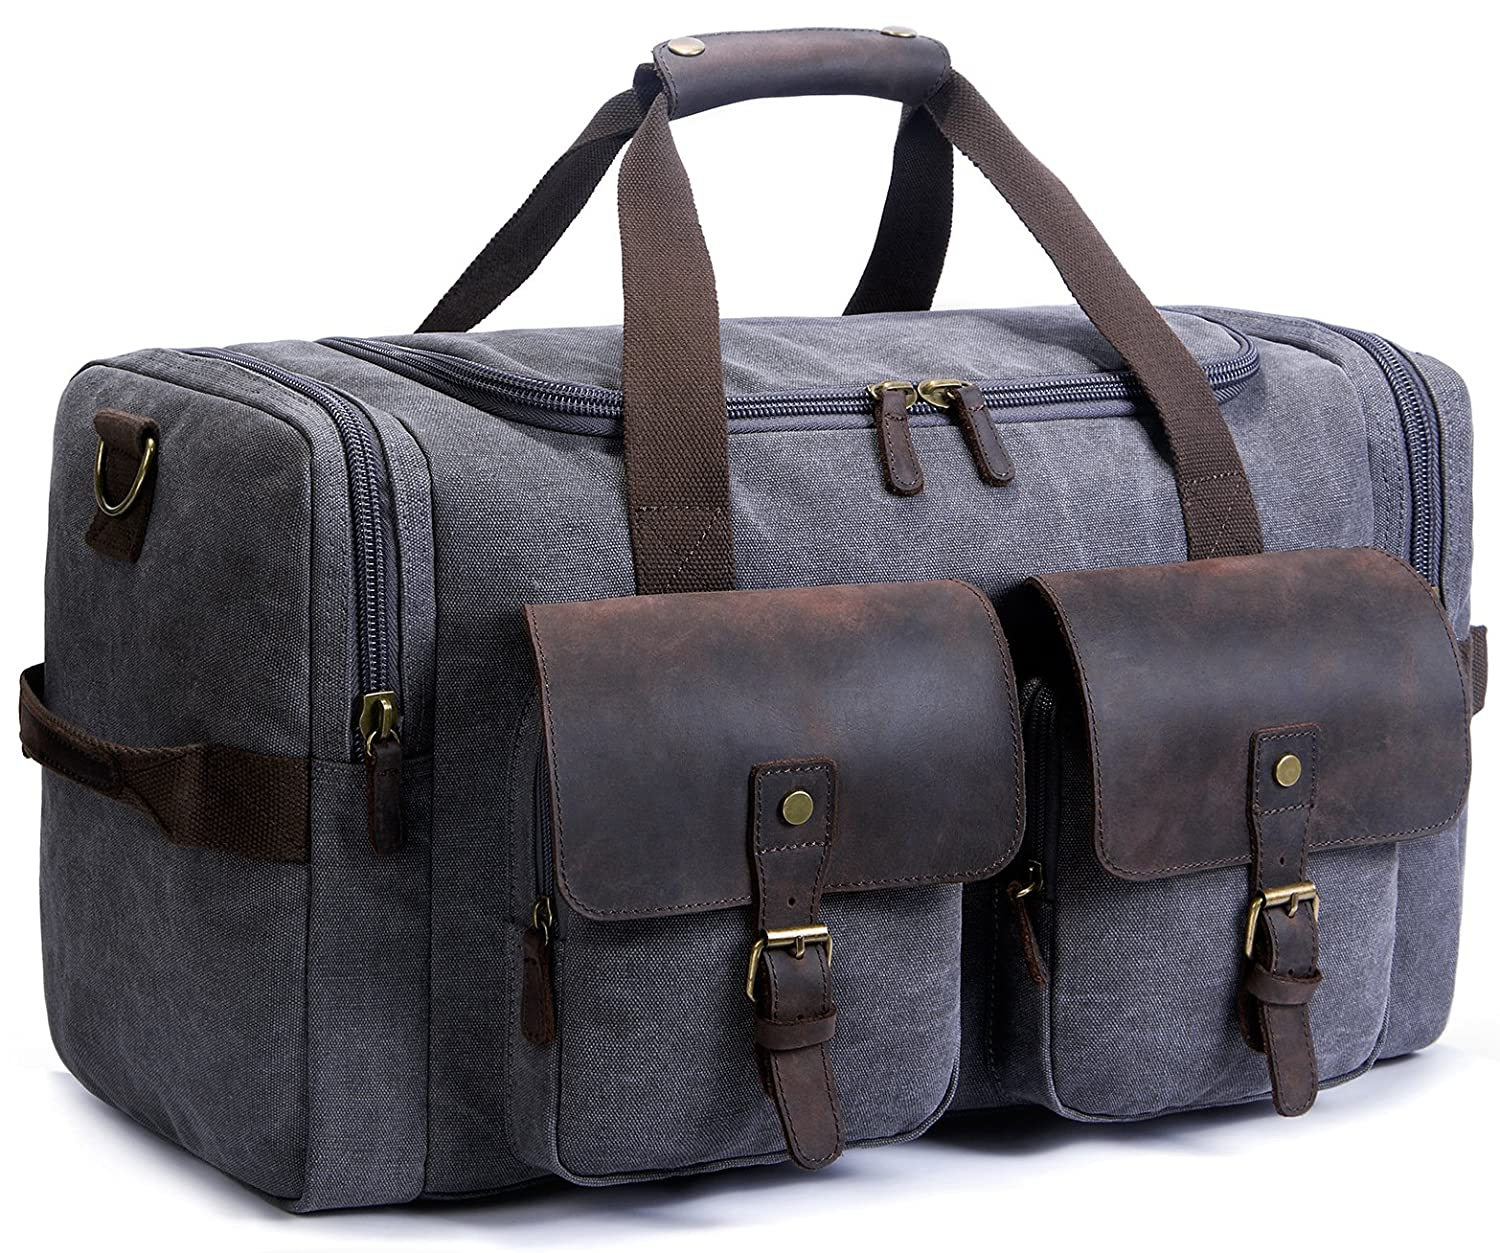 SUVOM Canvas Duffle Bag Leather Weekend Bag Carry On Travel Bag Luggage Oversized Holdalls for Men and Women SAI0370B